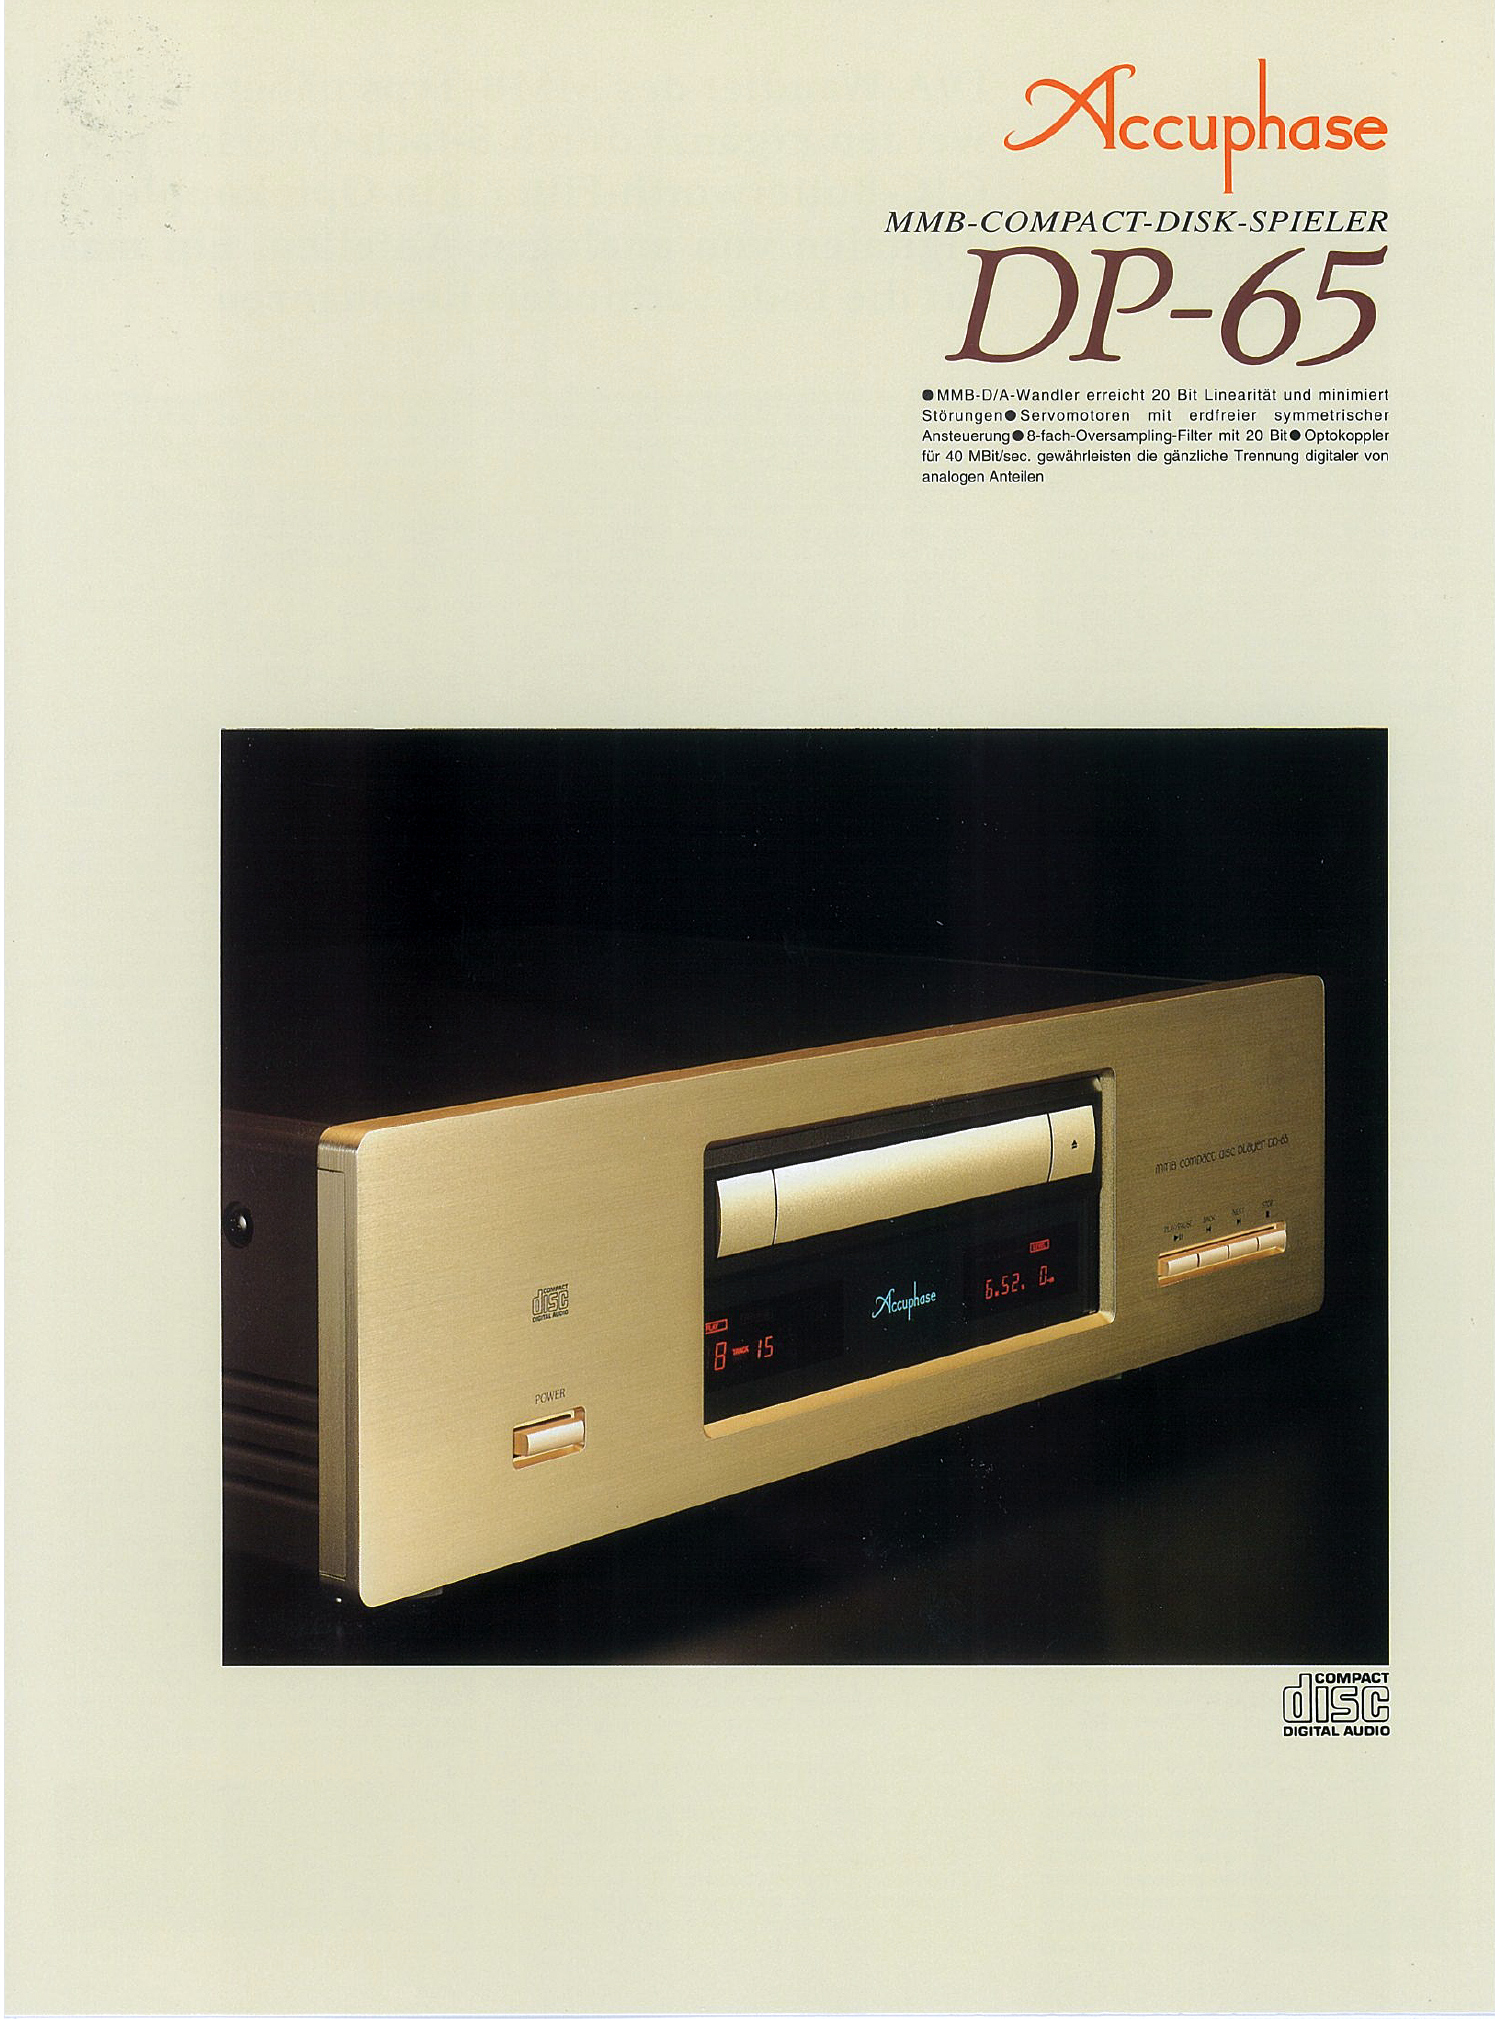 Accuphase DP-65-Prospekt-1.jpg